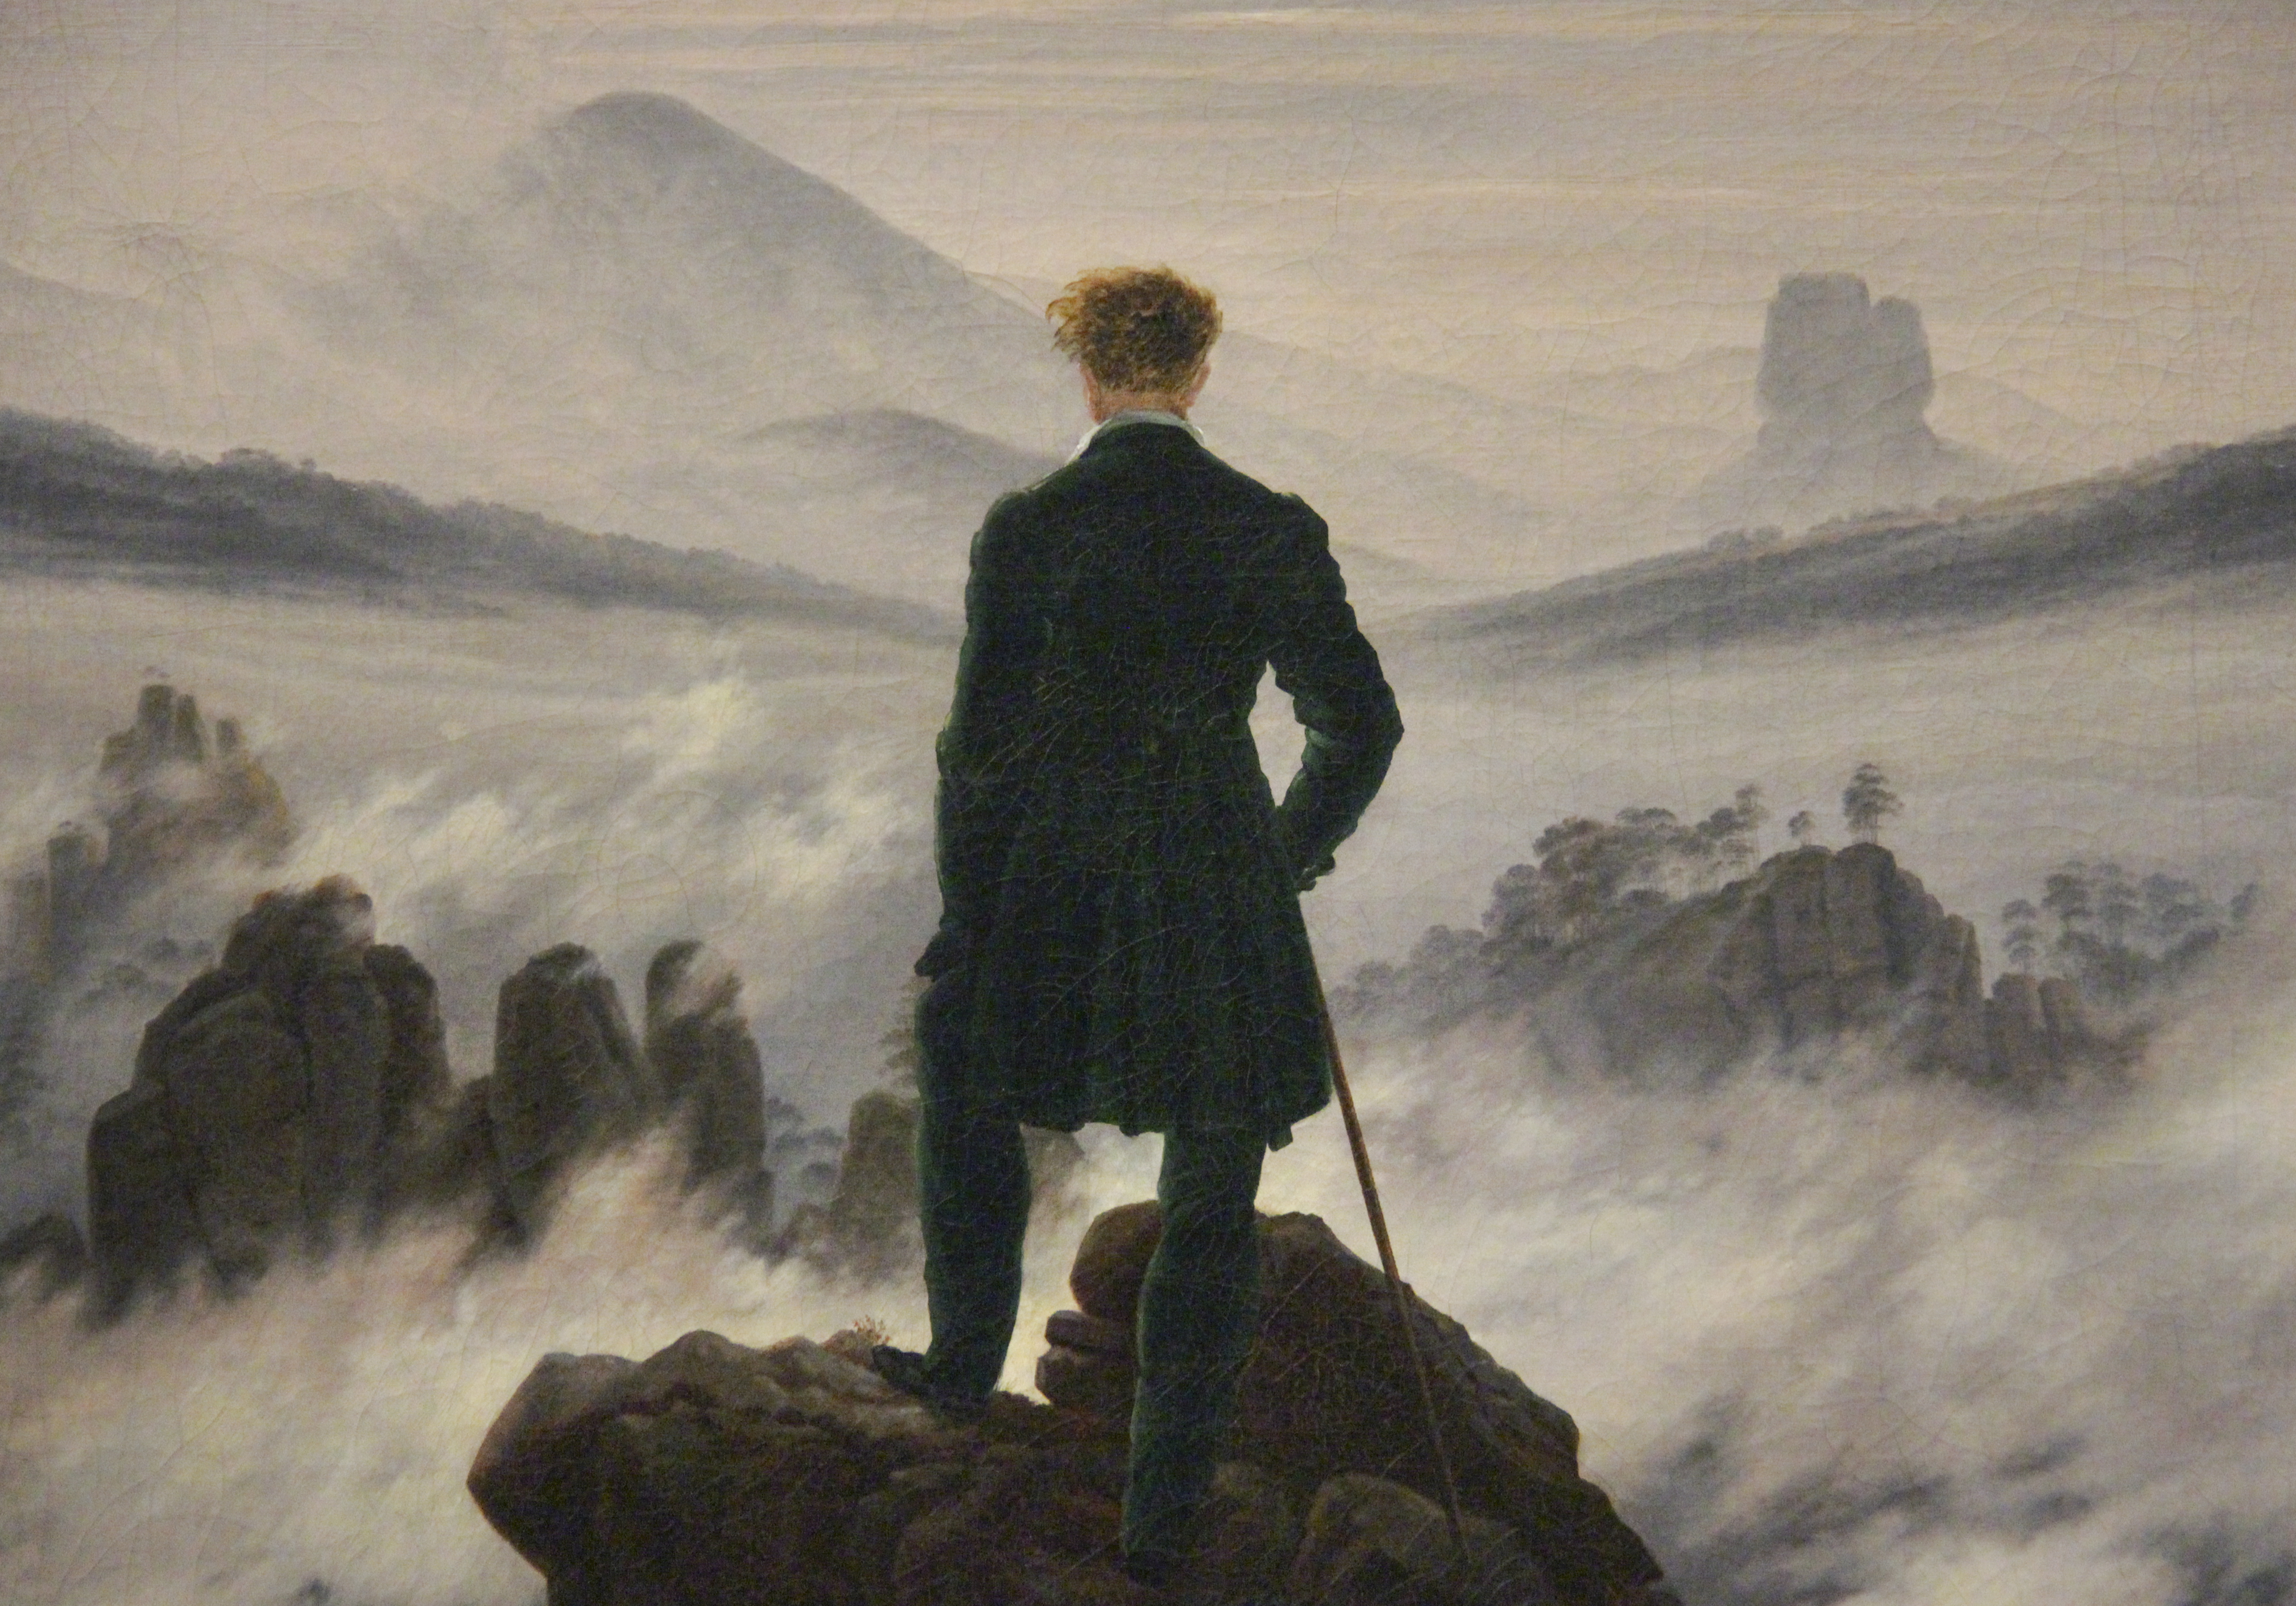 man in dark suit stands on mountain overlooking a sea of clouds